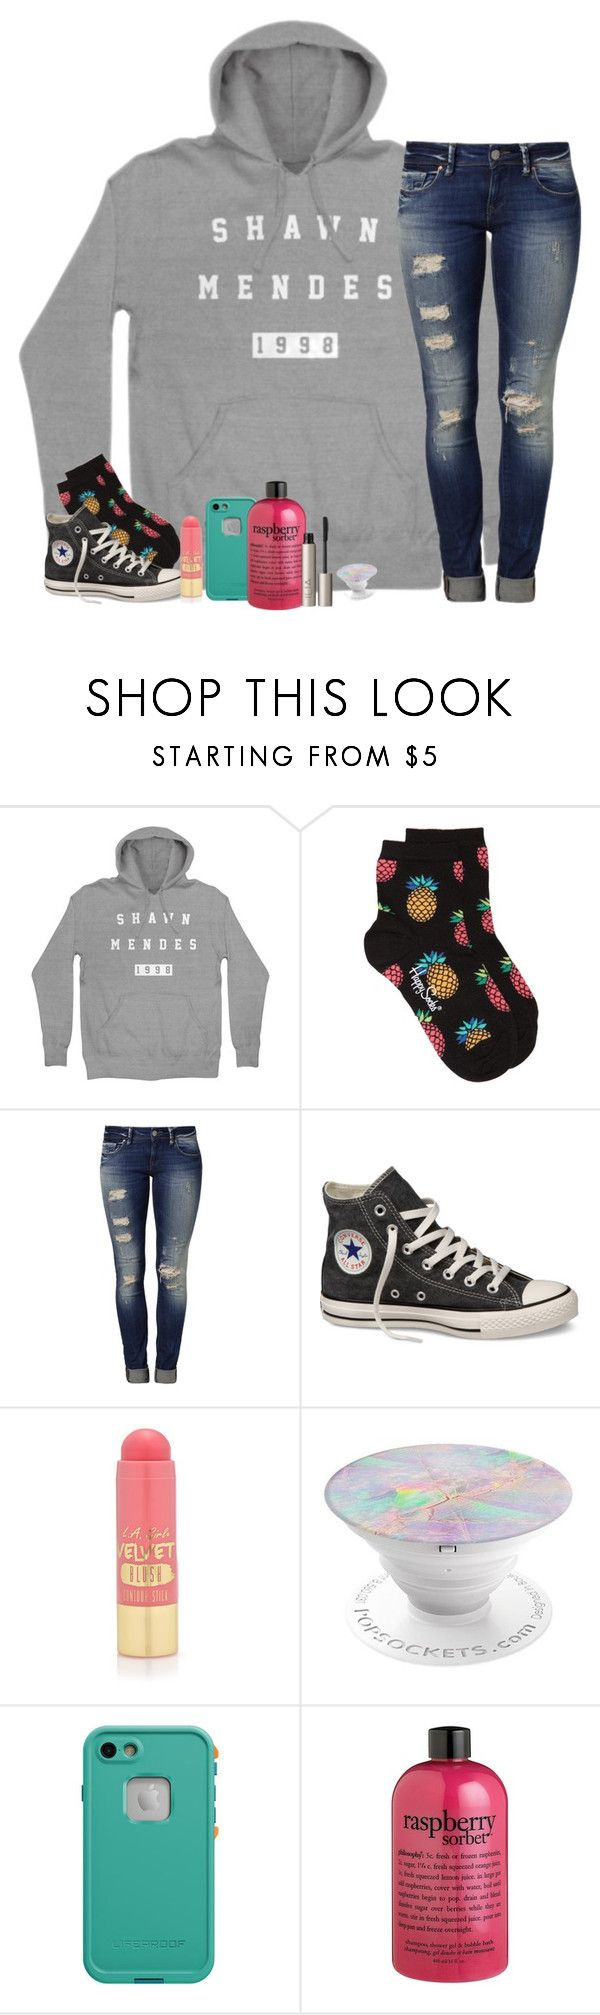 """""""Sincerely, Mrs. Mendes"""" by southernstruttin ❤ liked on Polyvore featuring Happy Socks, Mavi, Converse, L.A. Girl, LifeProof, philosophy and Ilia"""